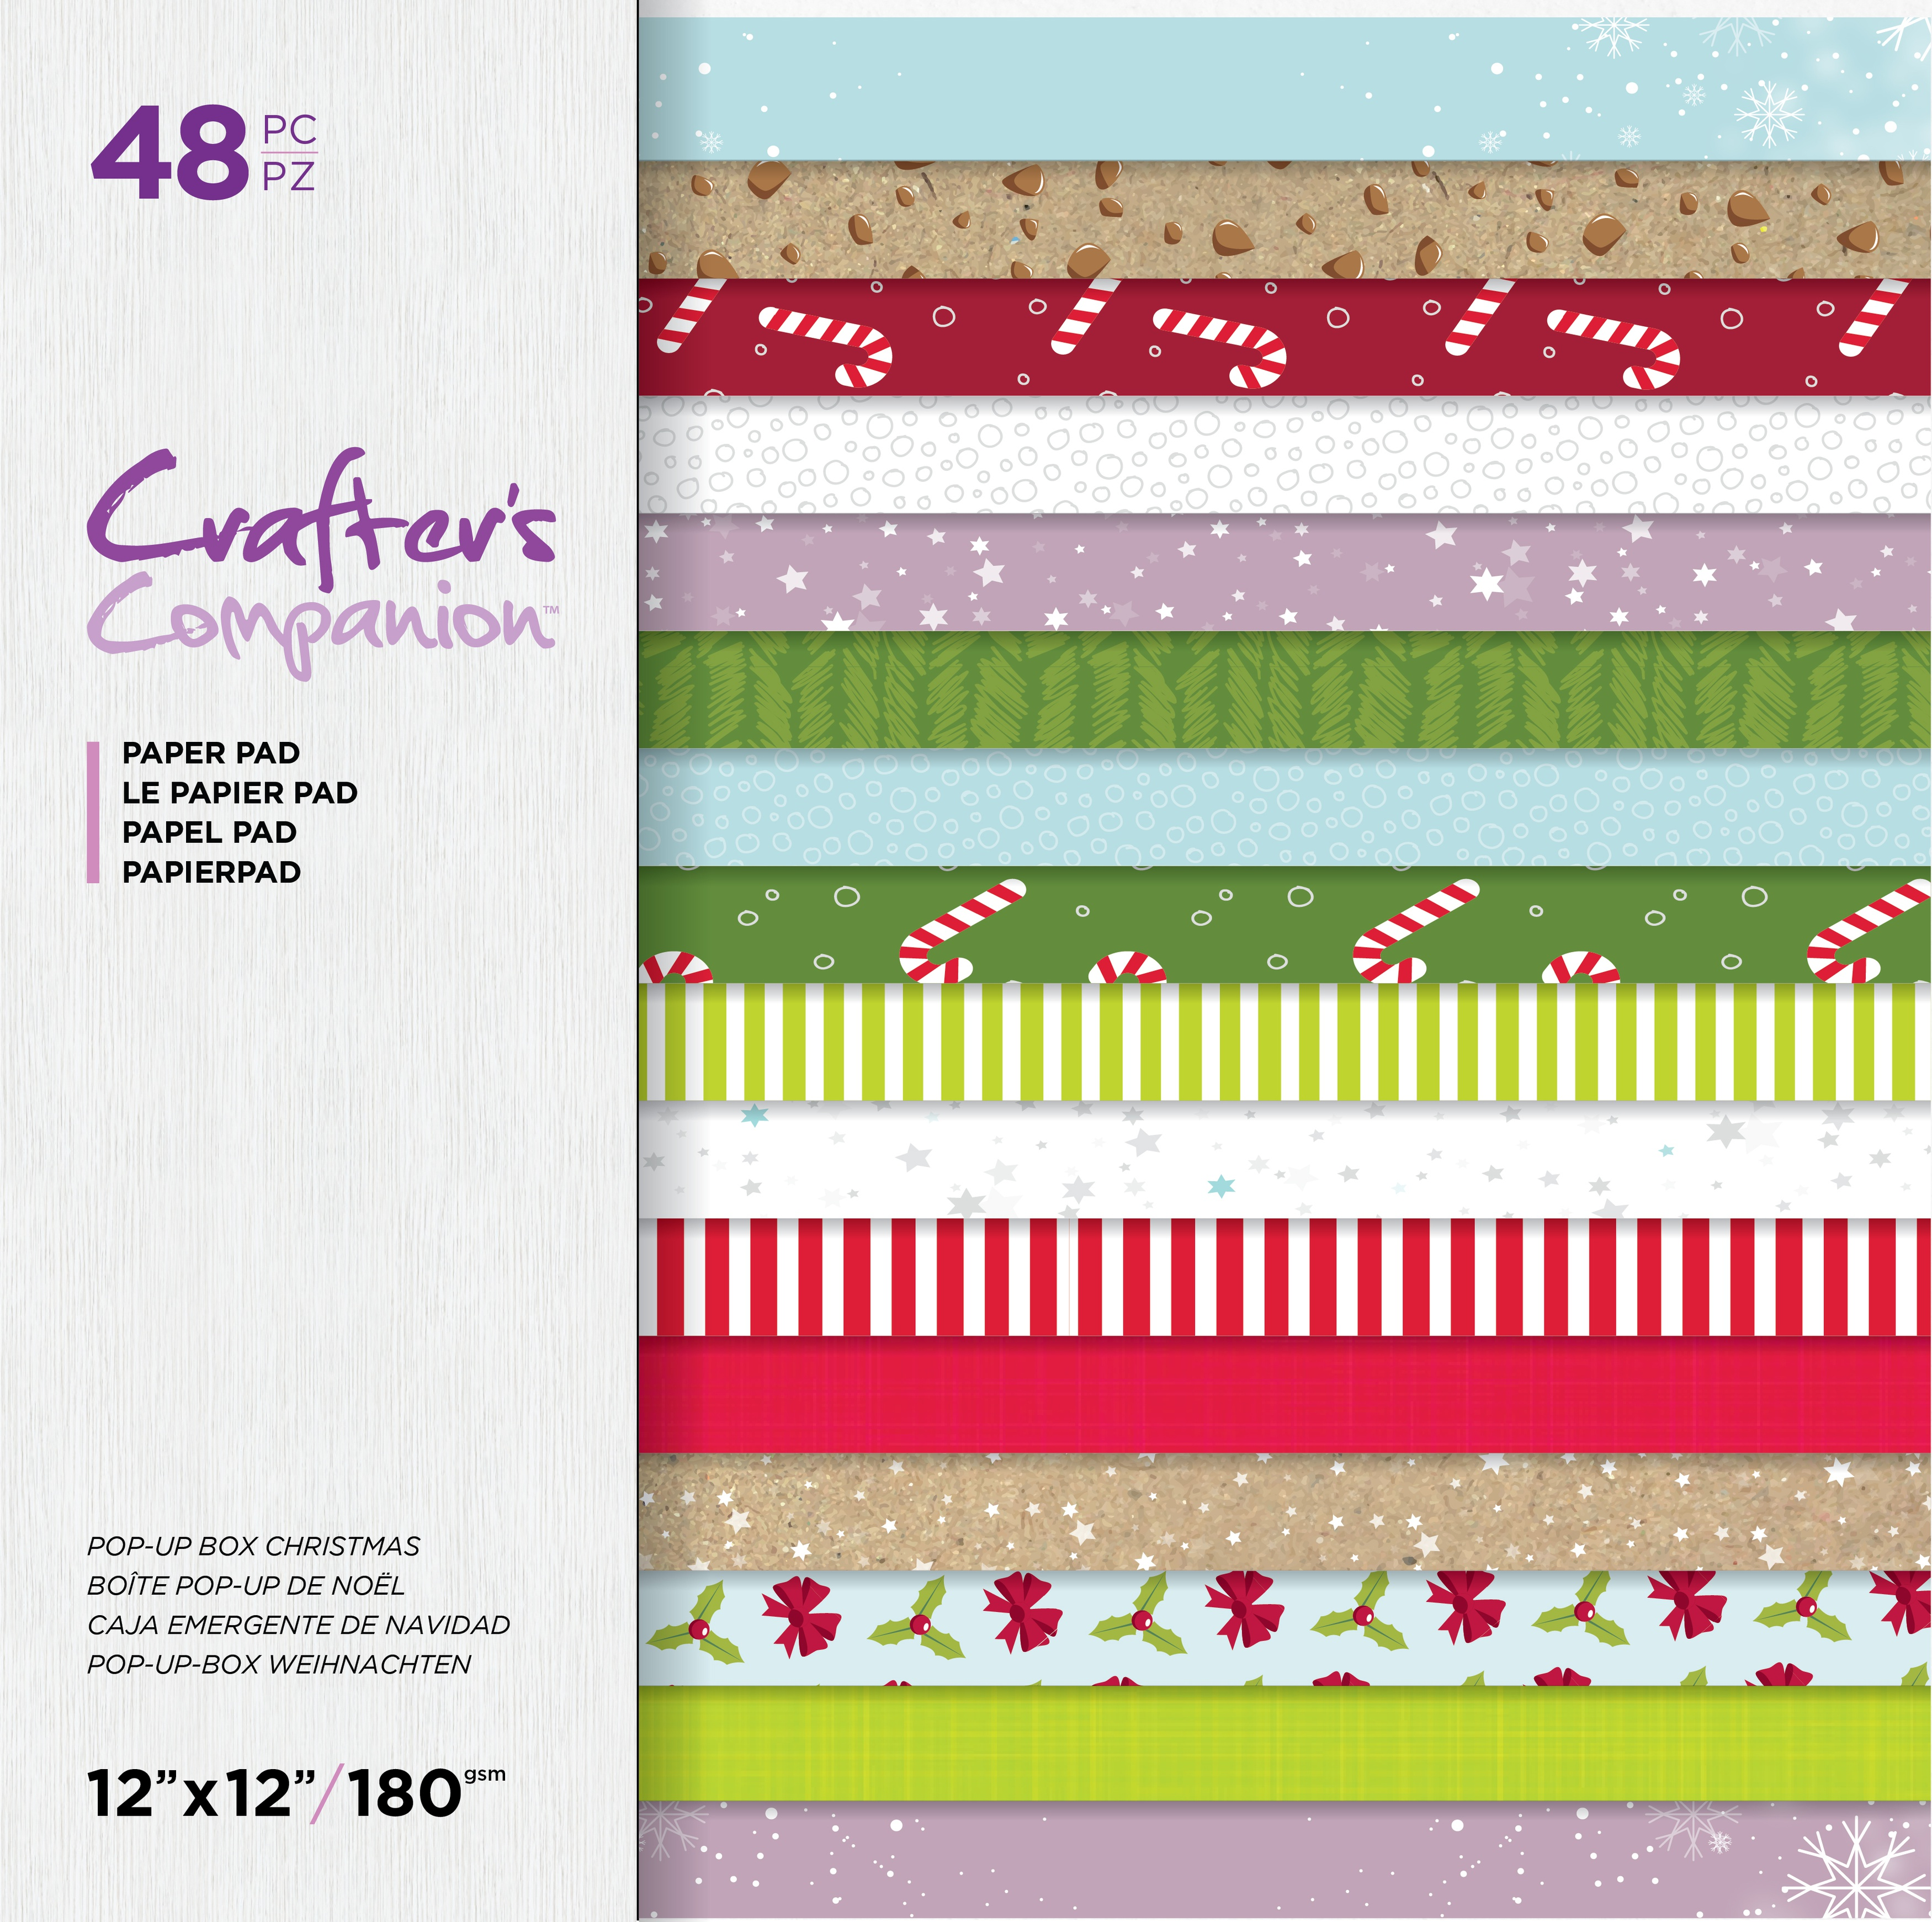 Crafter's Companion Printed Double-Sided Paper Pad 12X12-Pop-Up Box Christmas